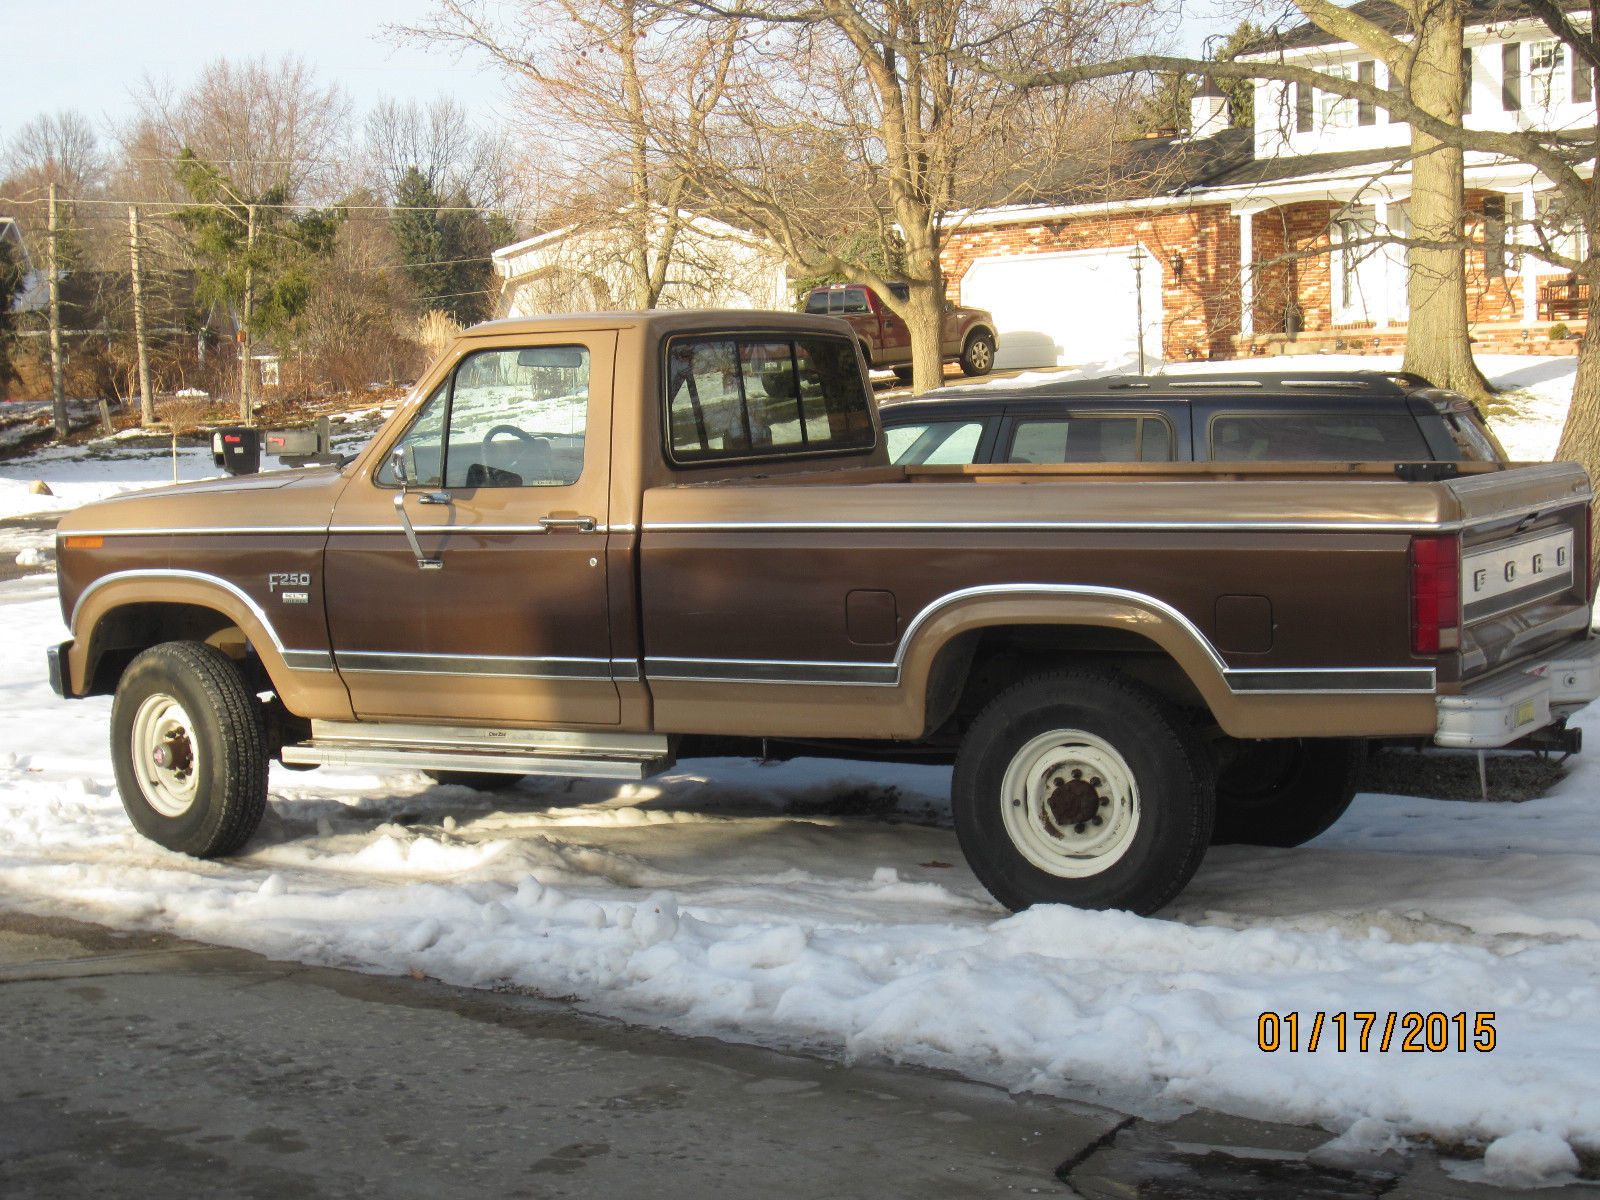 1984 ford f250 4x4 1980 85 ford truck 6 9 diesel for sale 1986 Ford F-250 1983 Ford F-250